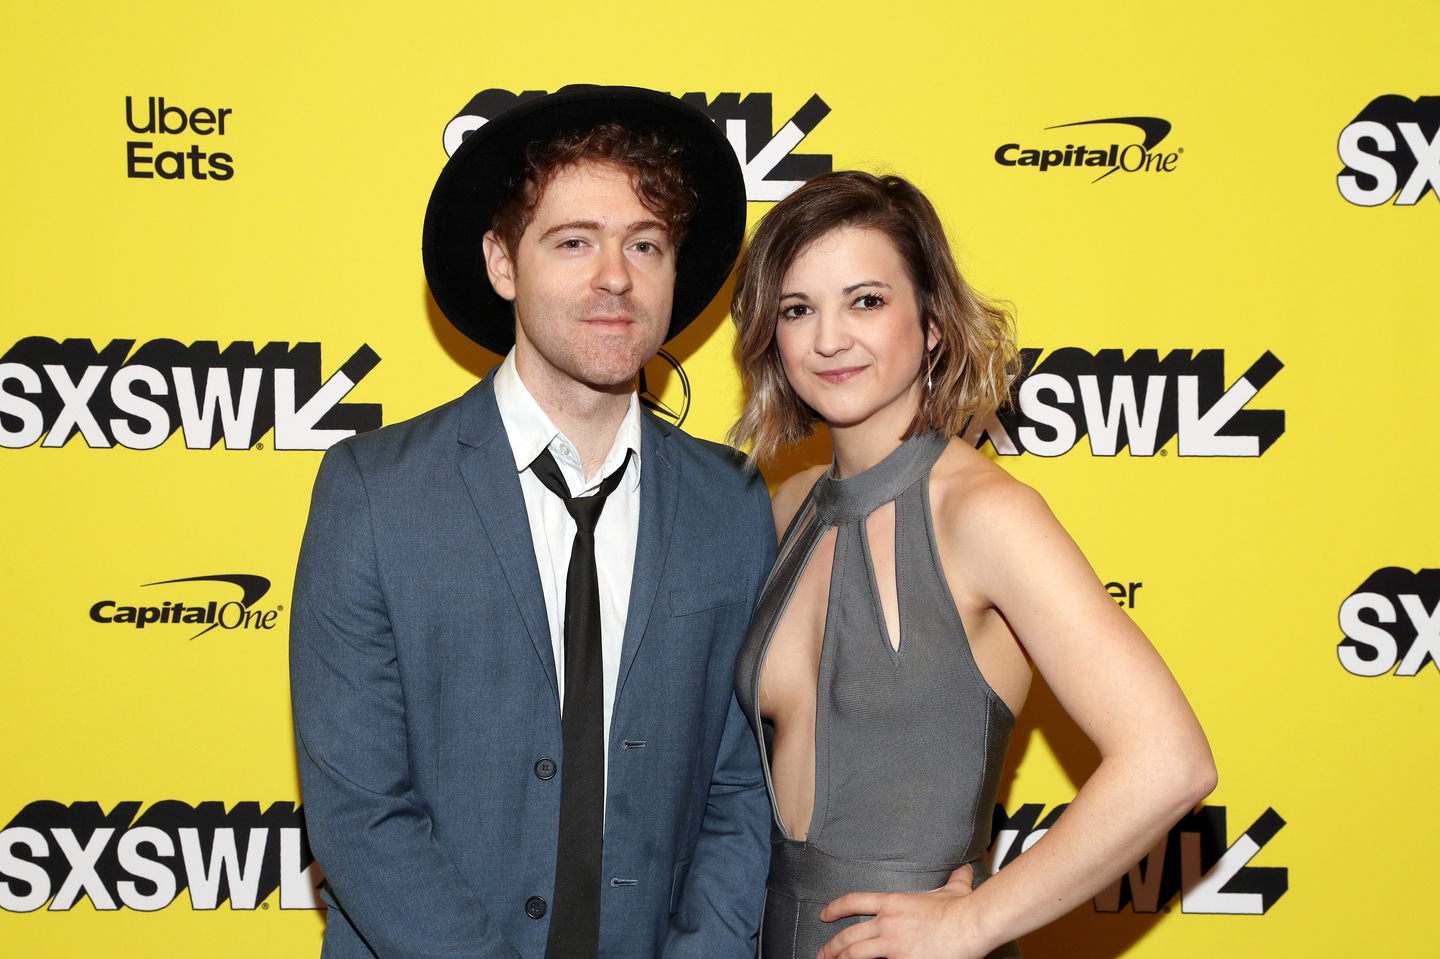 (L-R) Justin Davis and Sarah Zimmermann of Striking Matches attend the Bluebird premiere at the Paramount Theater.